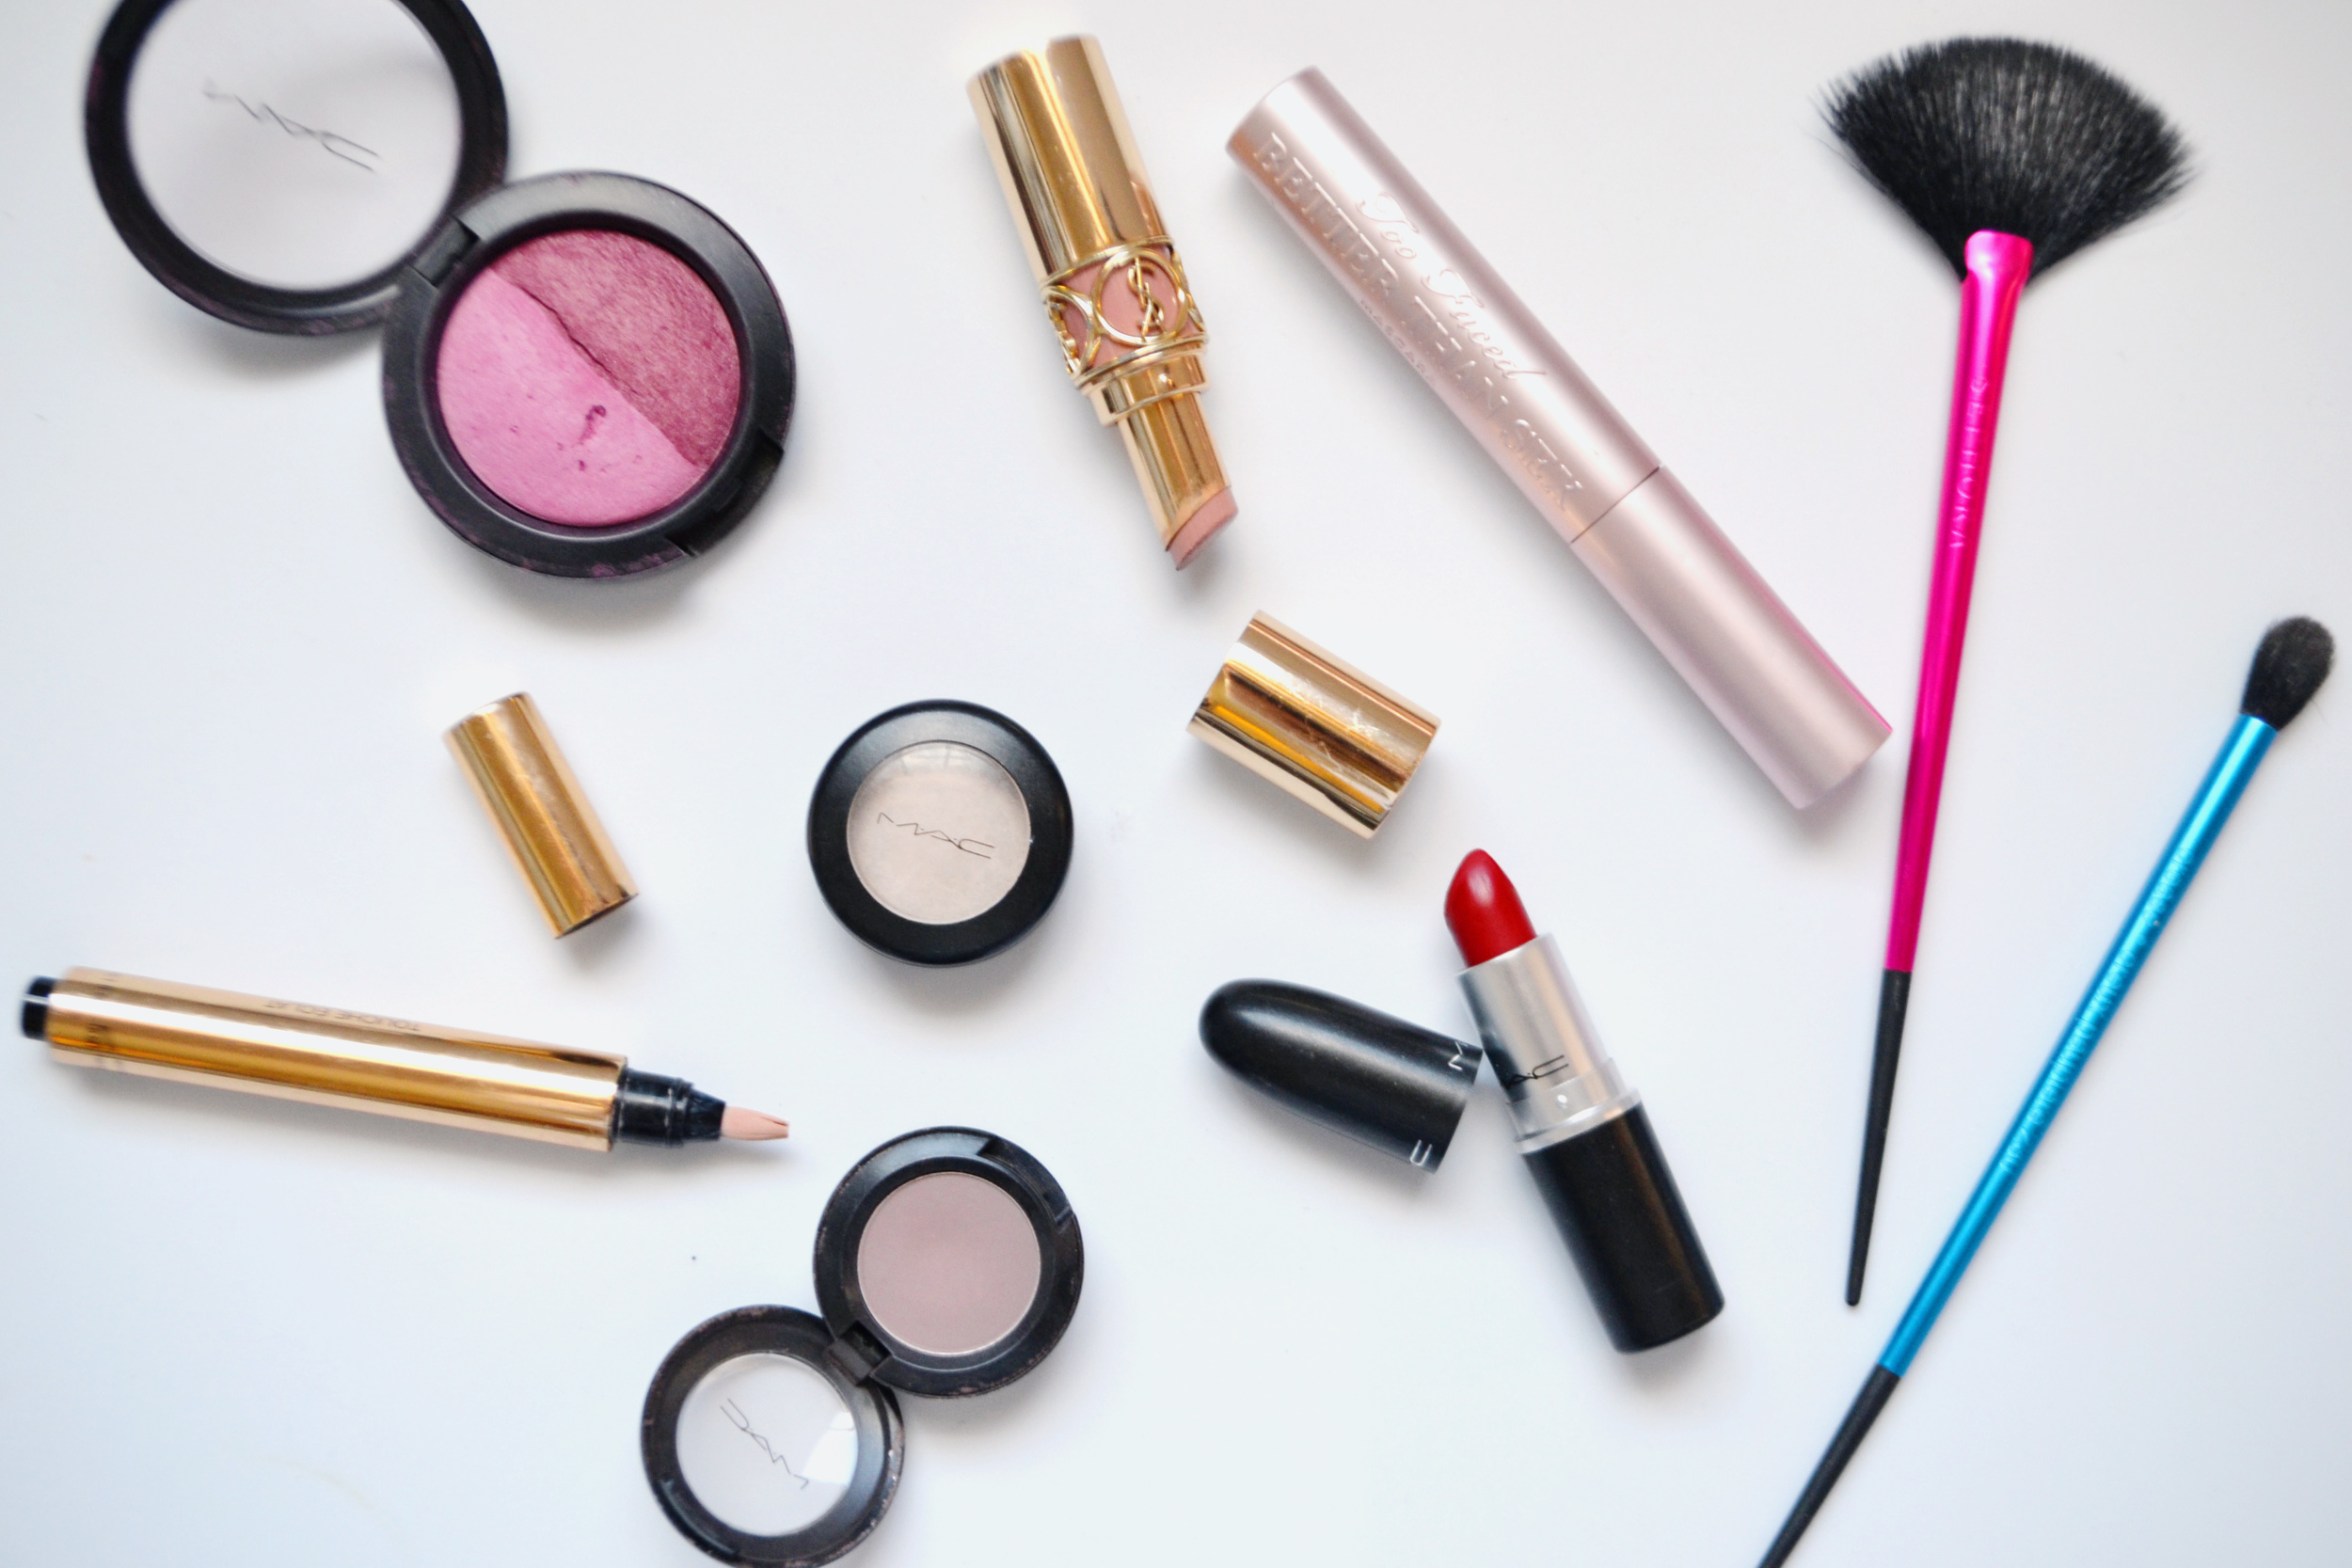 Date Night Makeup Routine (via Chic Now)